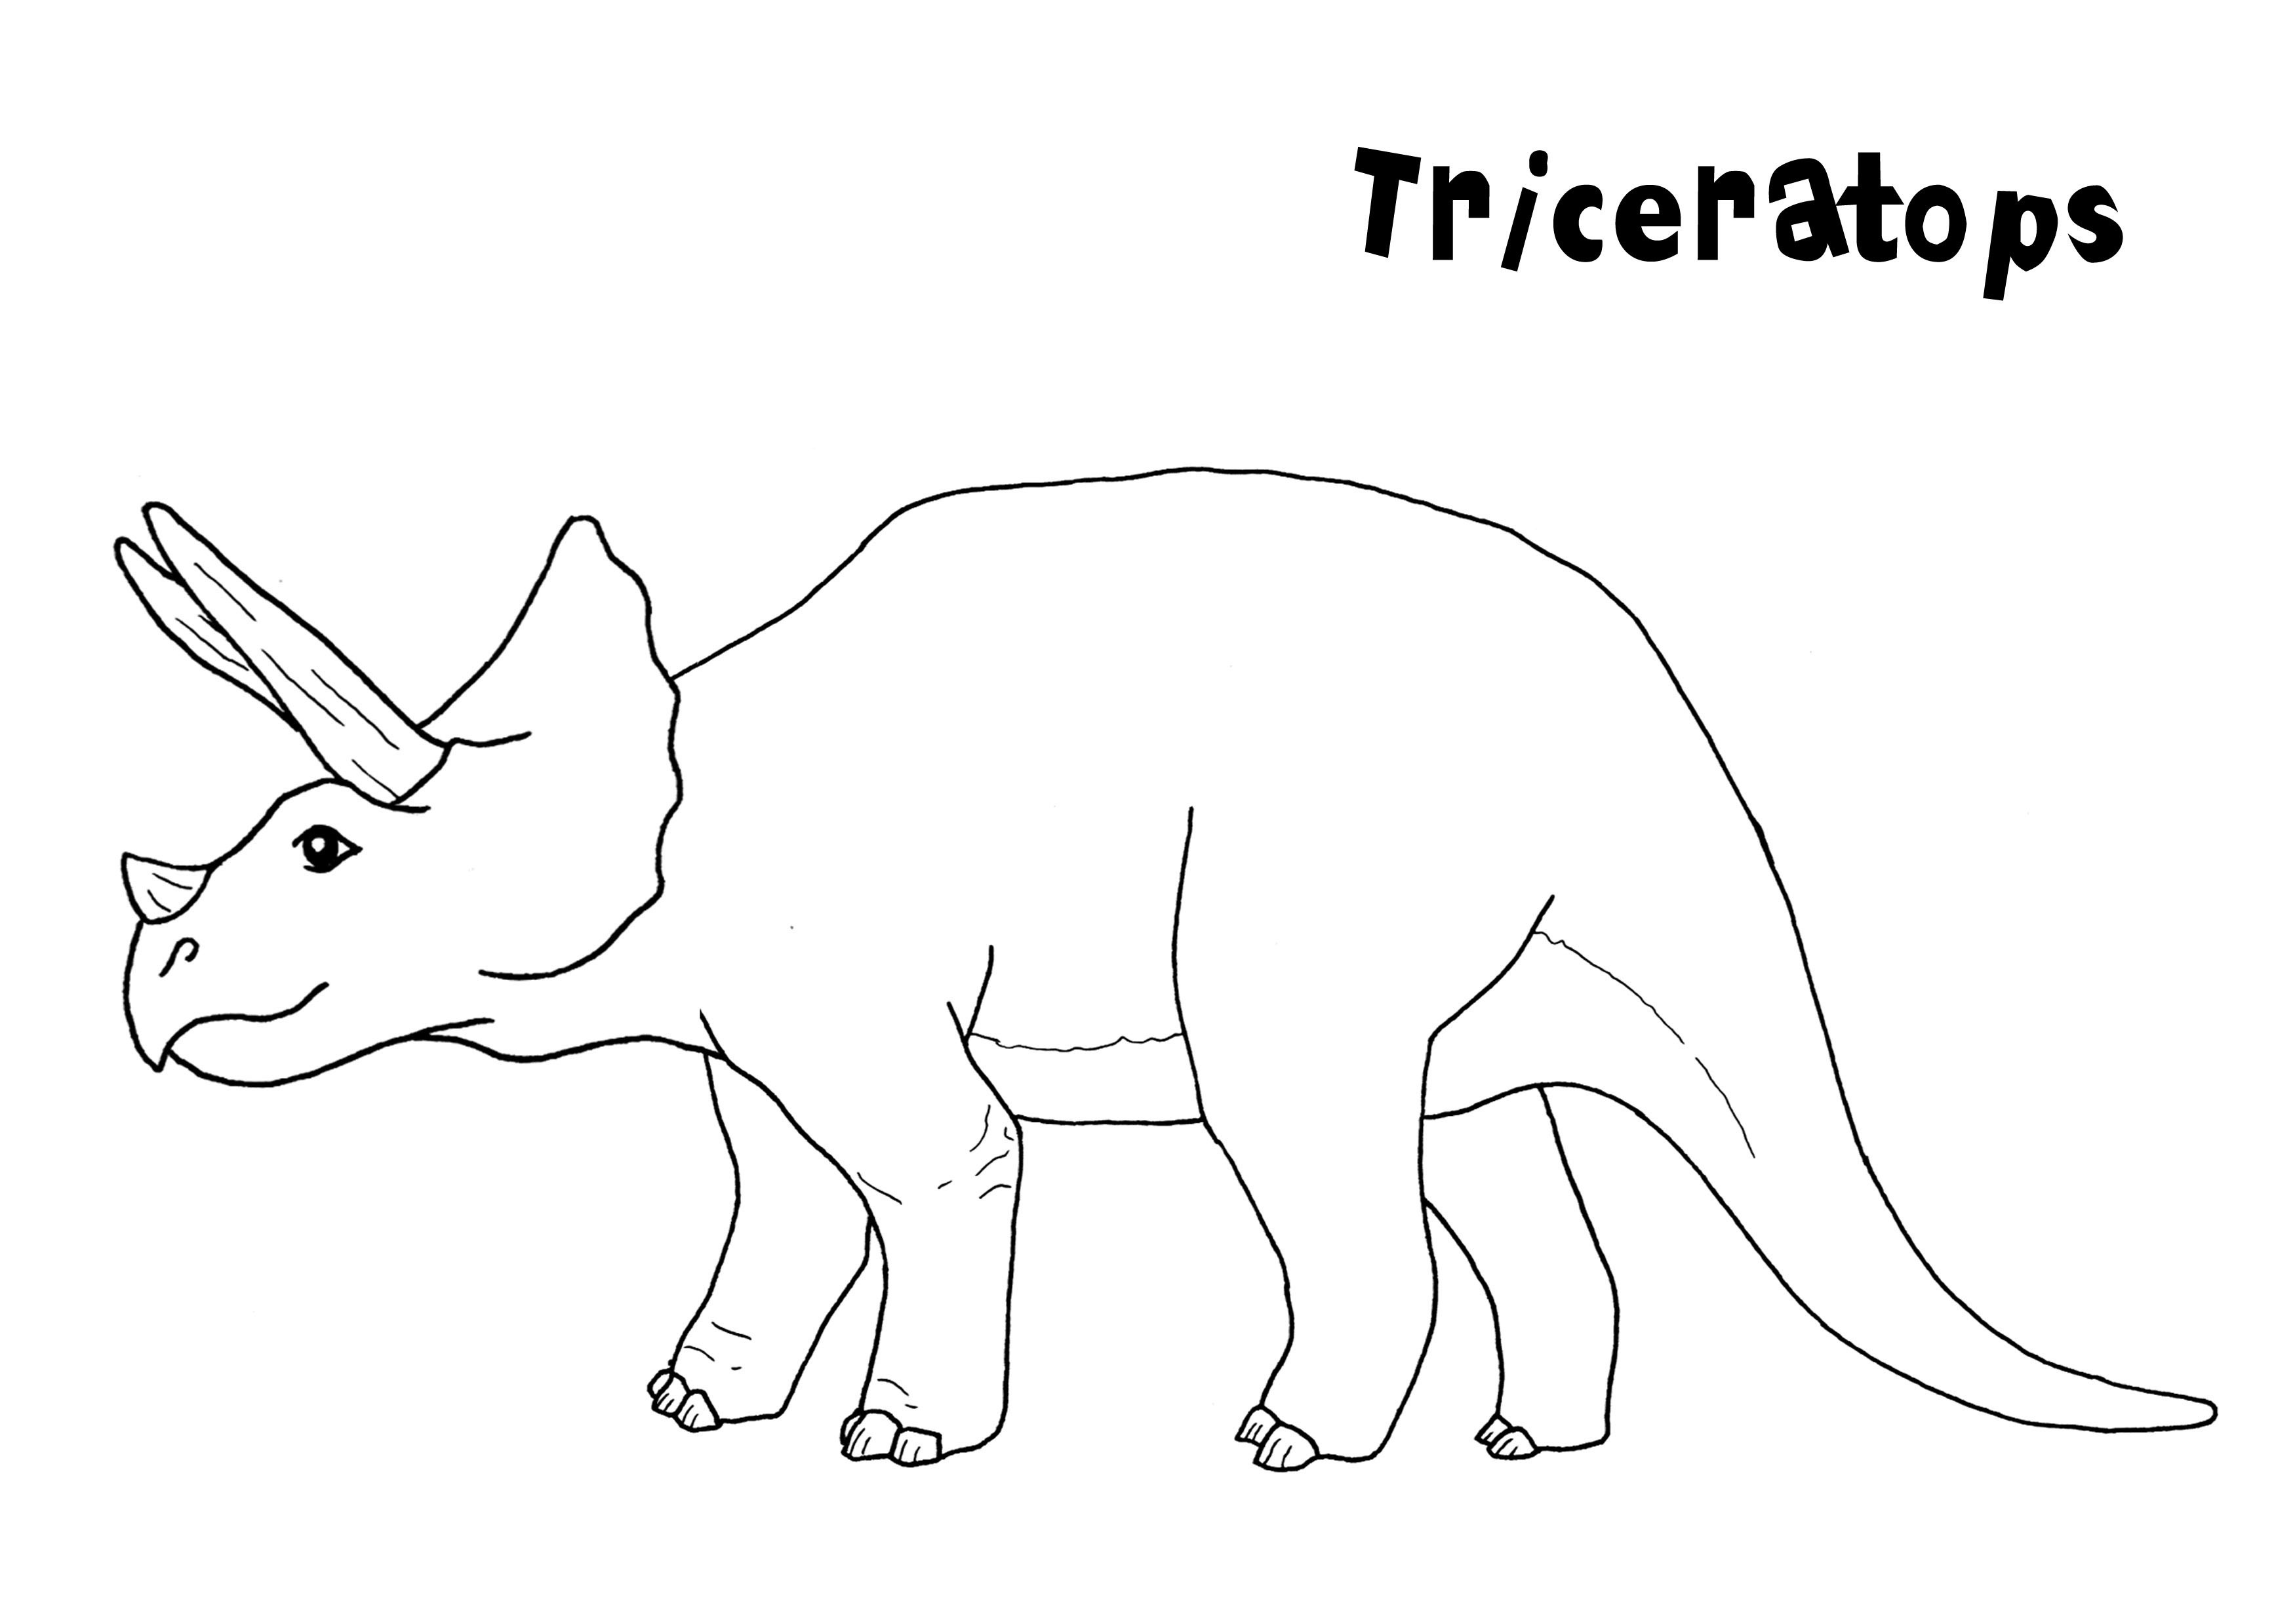 dinosaur printout coloring pages dinosaur free printable coloring pages dinosaur printout